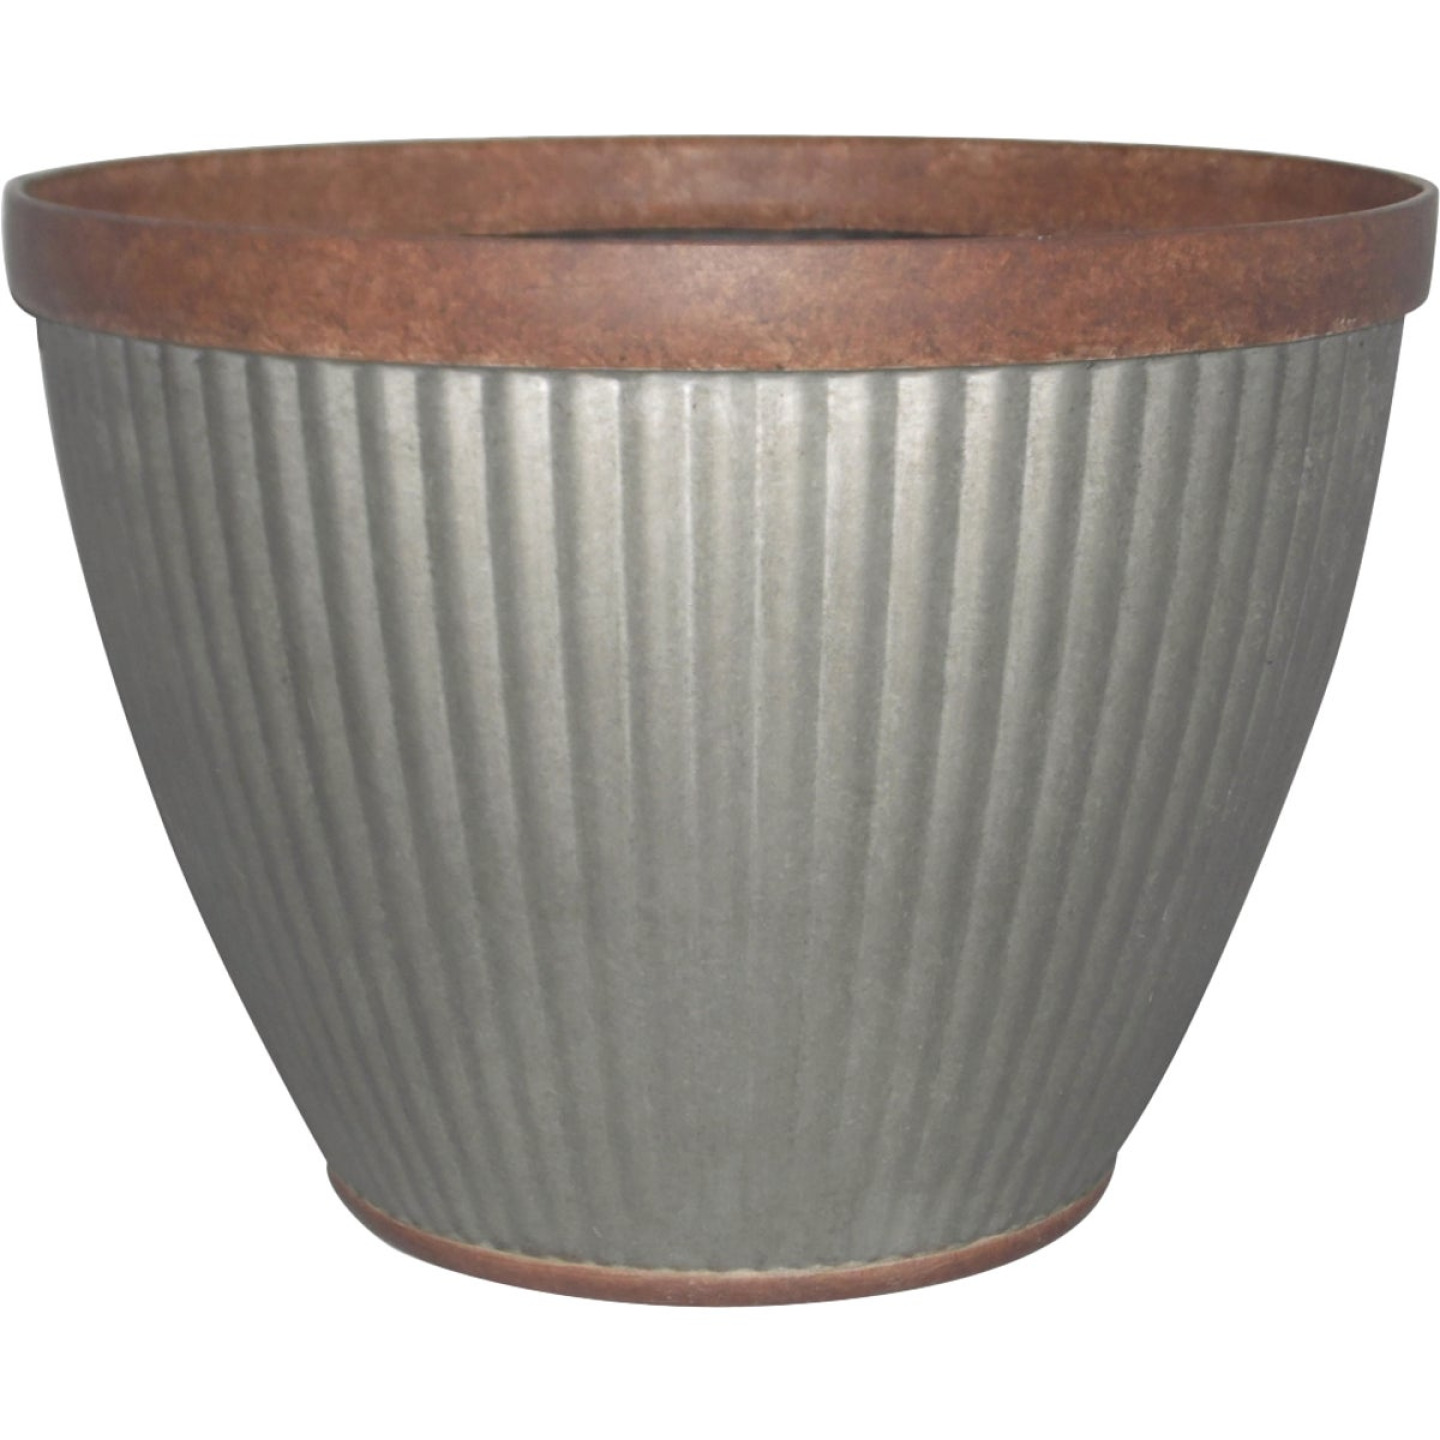 Southern Patio Westlake 20.5 In. Resin Rustic Galvanized Round Pleated Planter Image 1